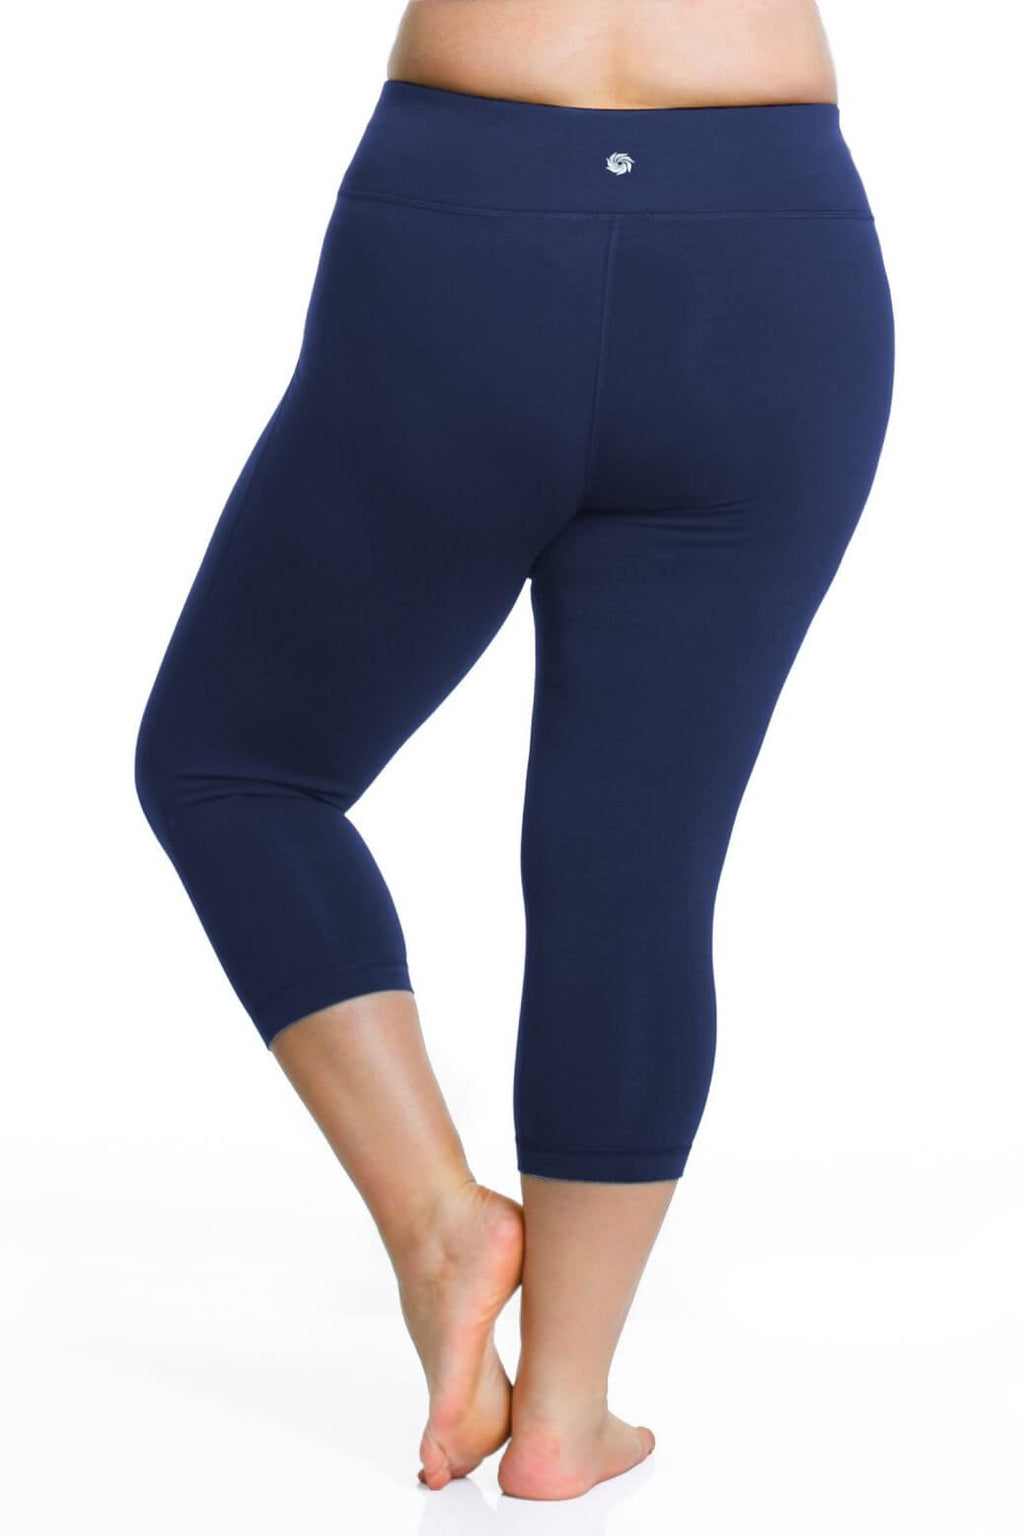 Model is shown from the back wearing navy capri length leggings with pocket